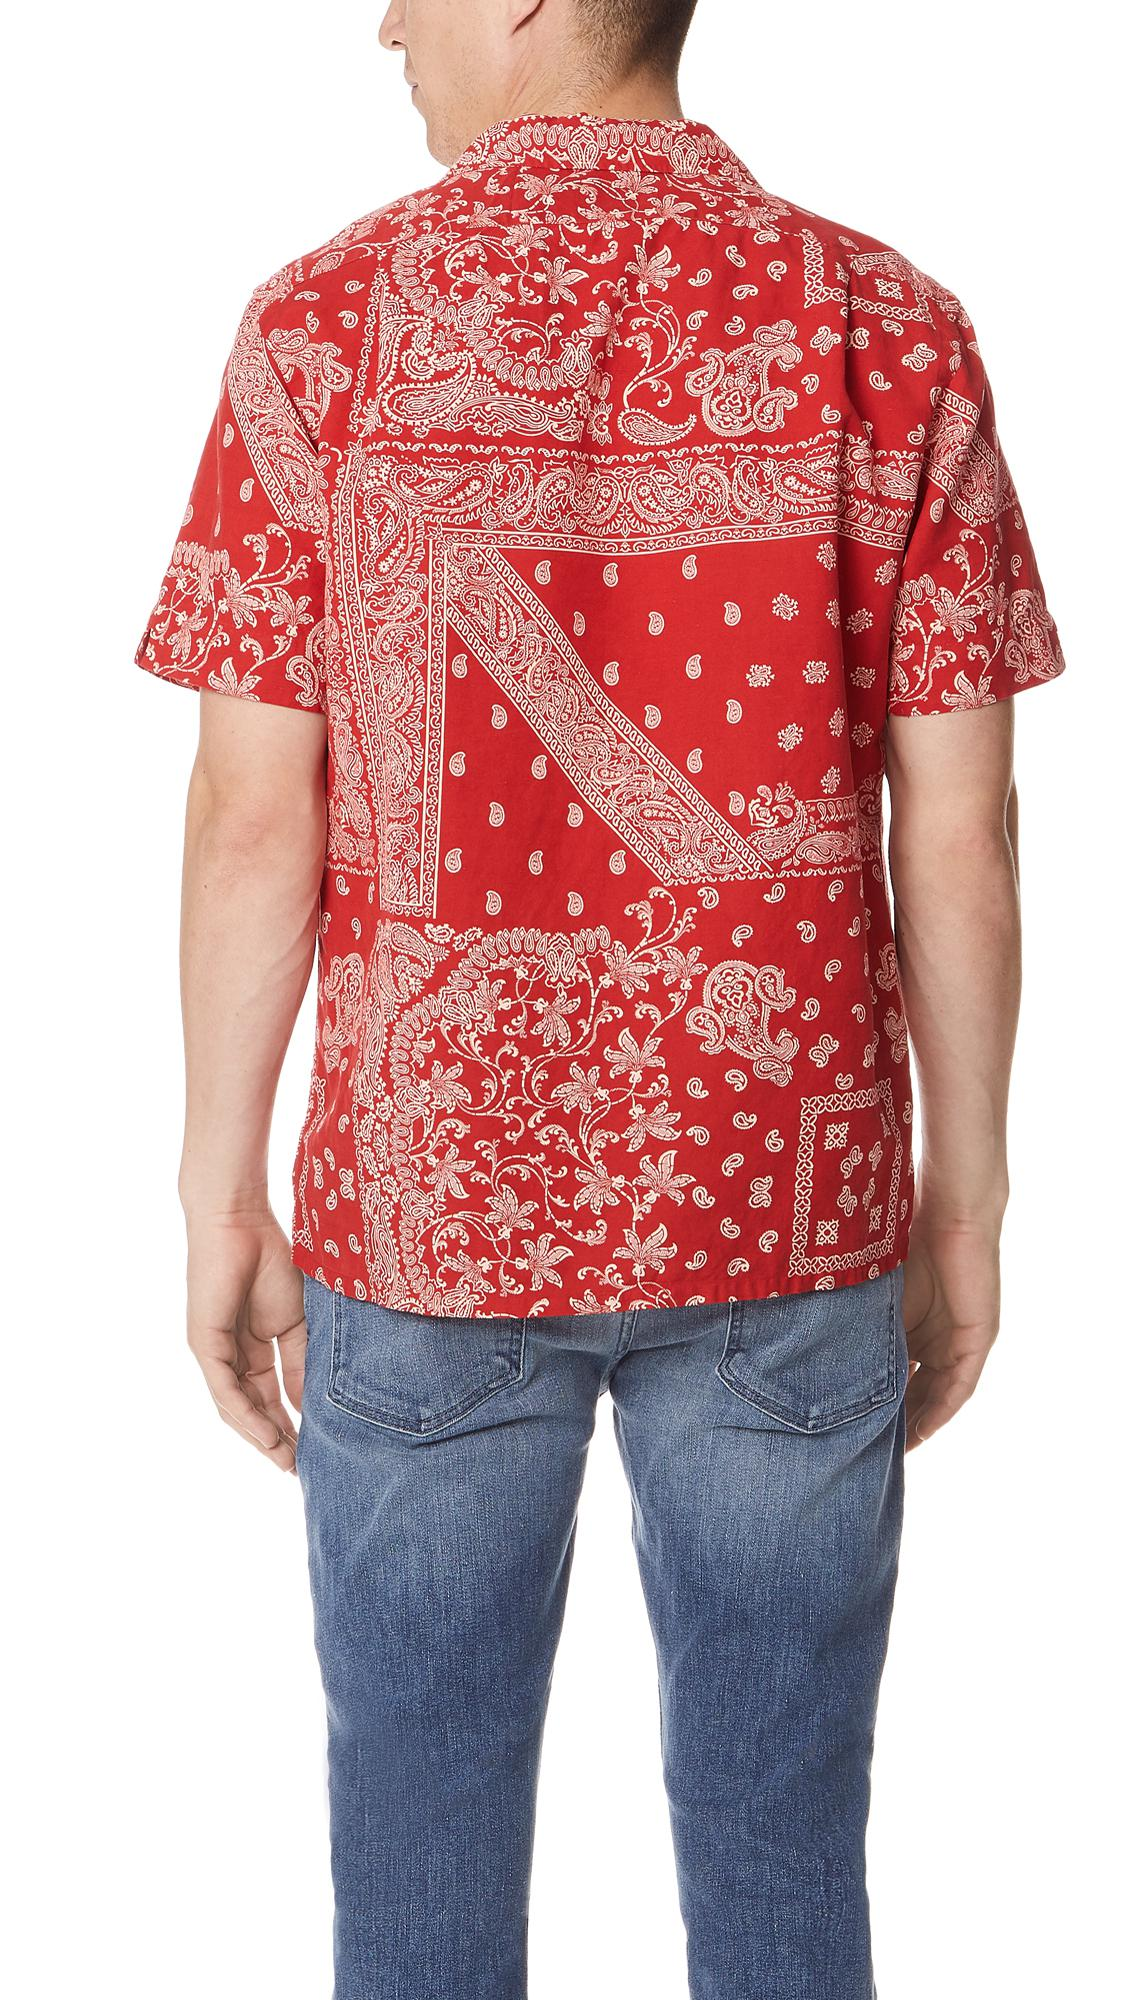 b37cd36f4 ... promo code for lyst polo ralph lauren bandana shirt in red for men  d852a f8f5a